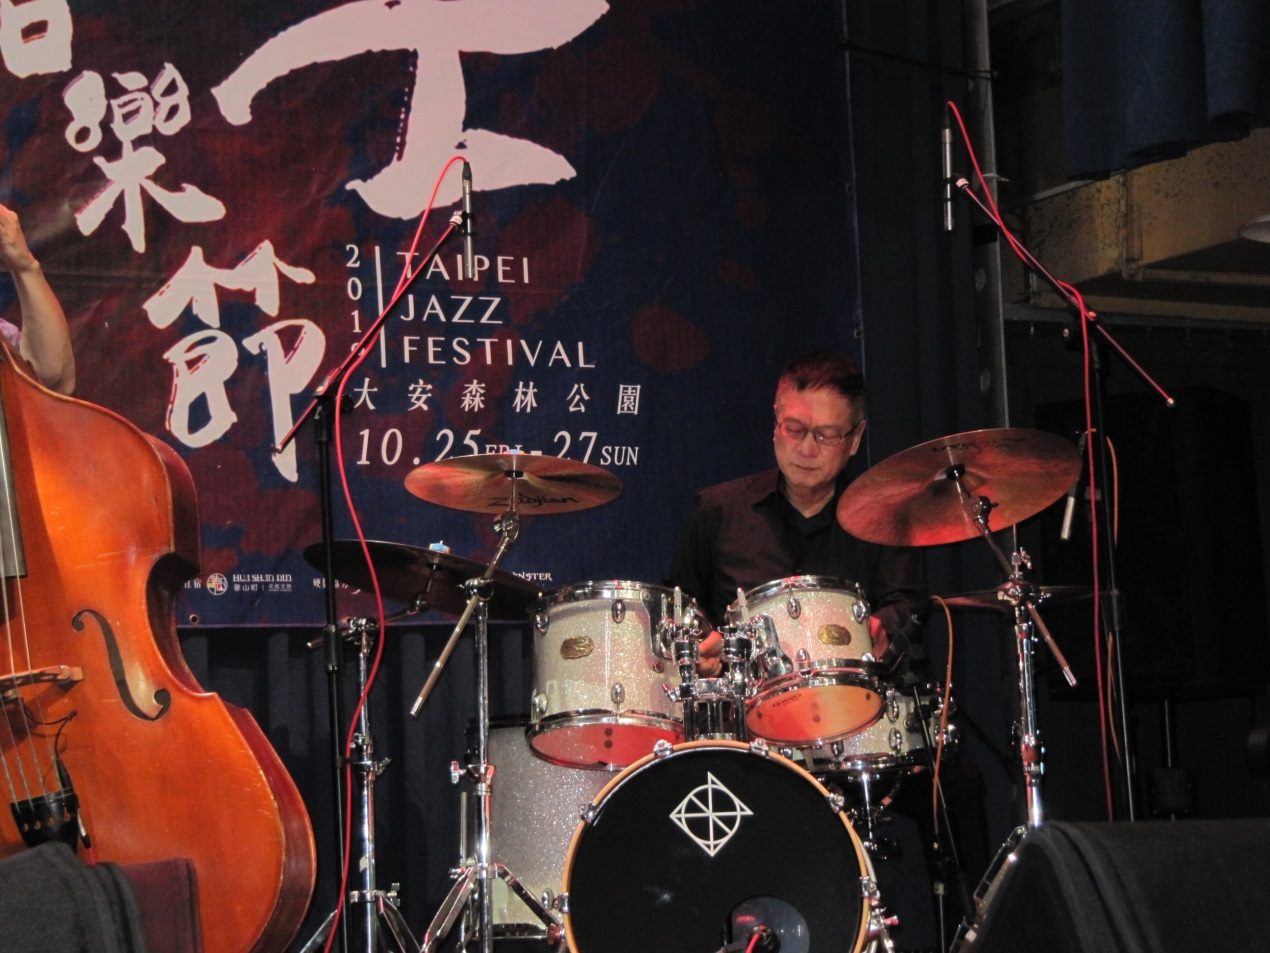 Taiwanese drummer Rich Huang performs during the press conference on October 23.